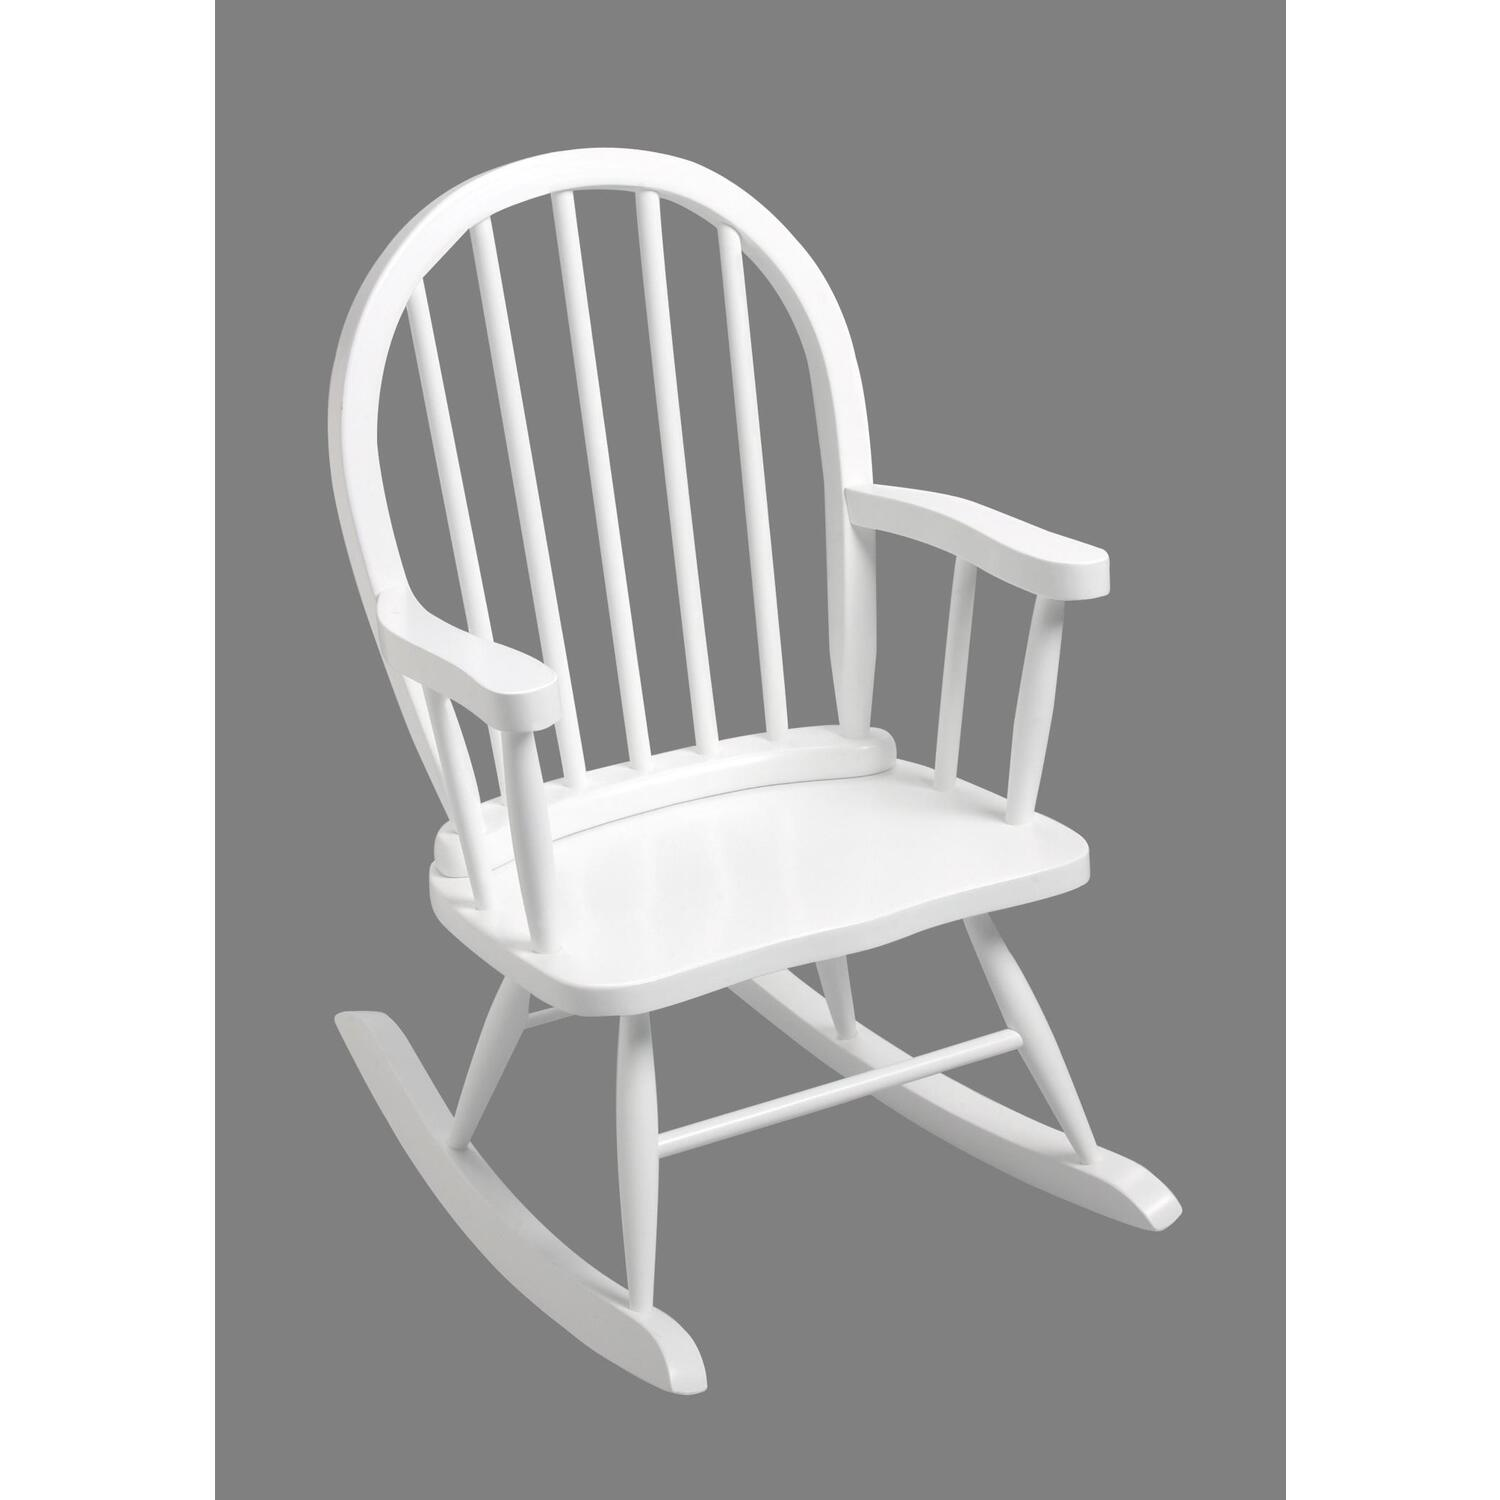 Gift Mark 3600C Windsor Childrens Rocking Chair